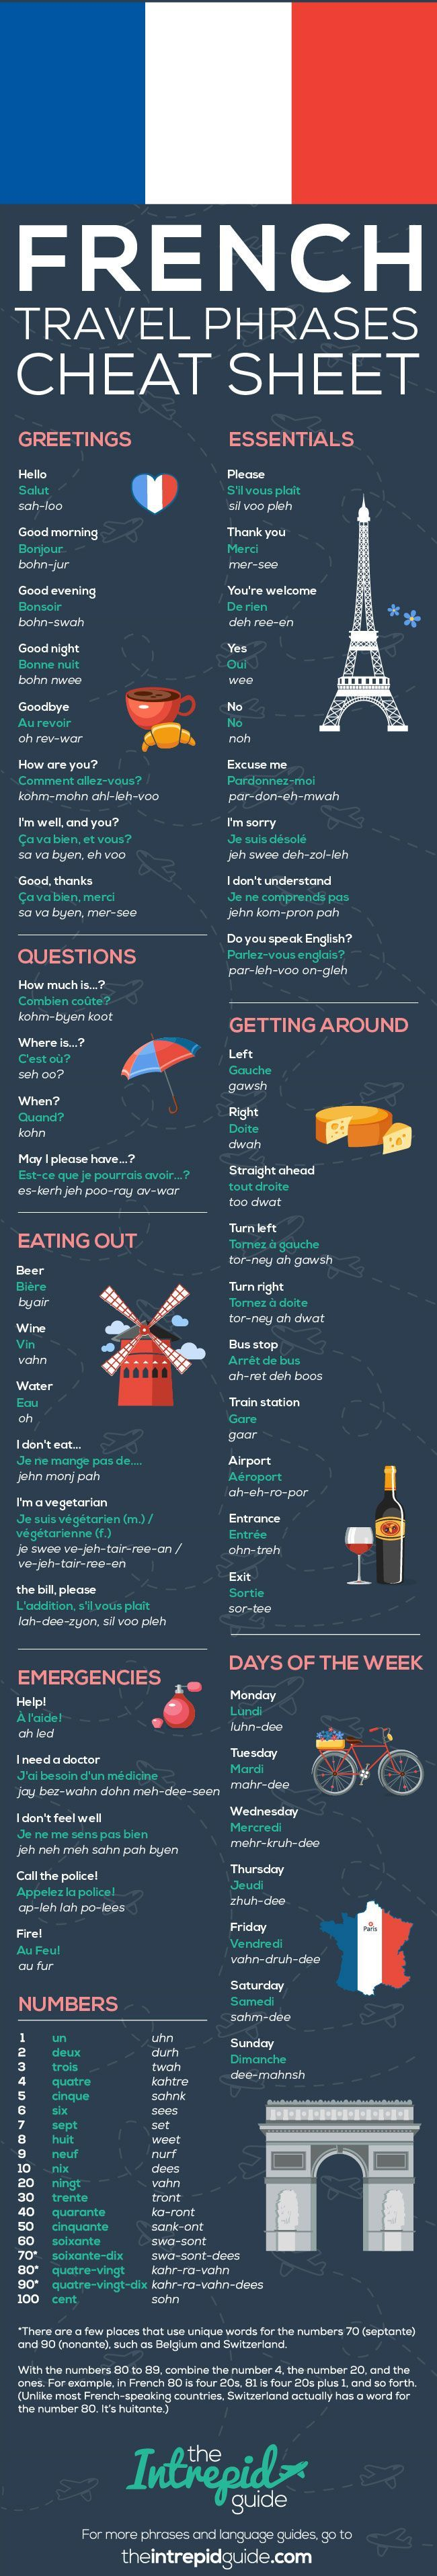 French Phrases French travel phrase guide with pronunication